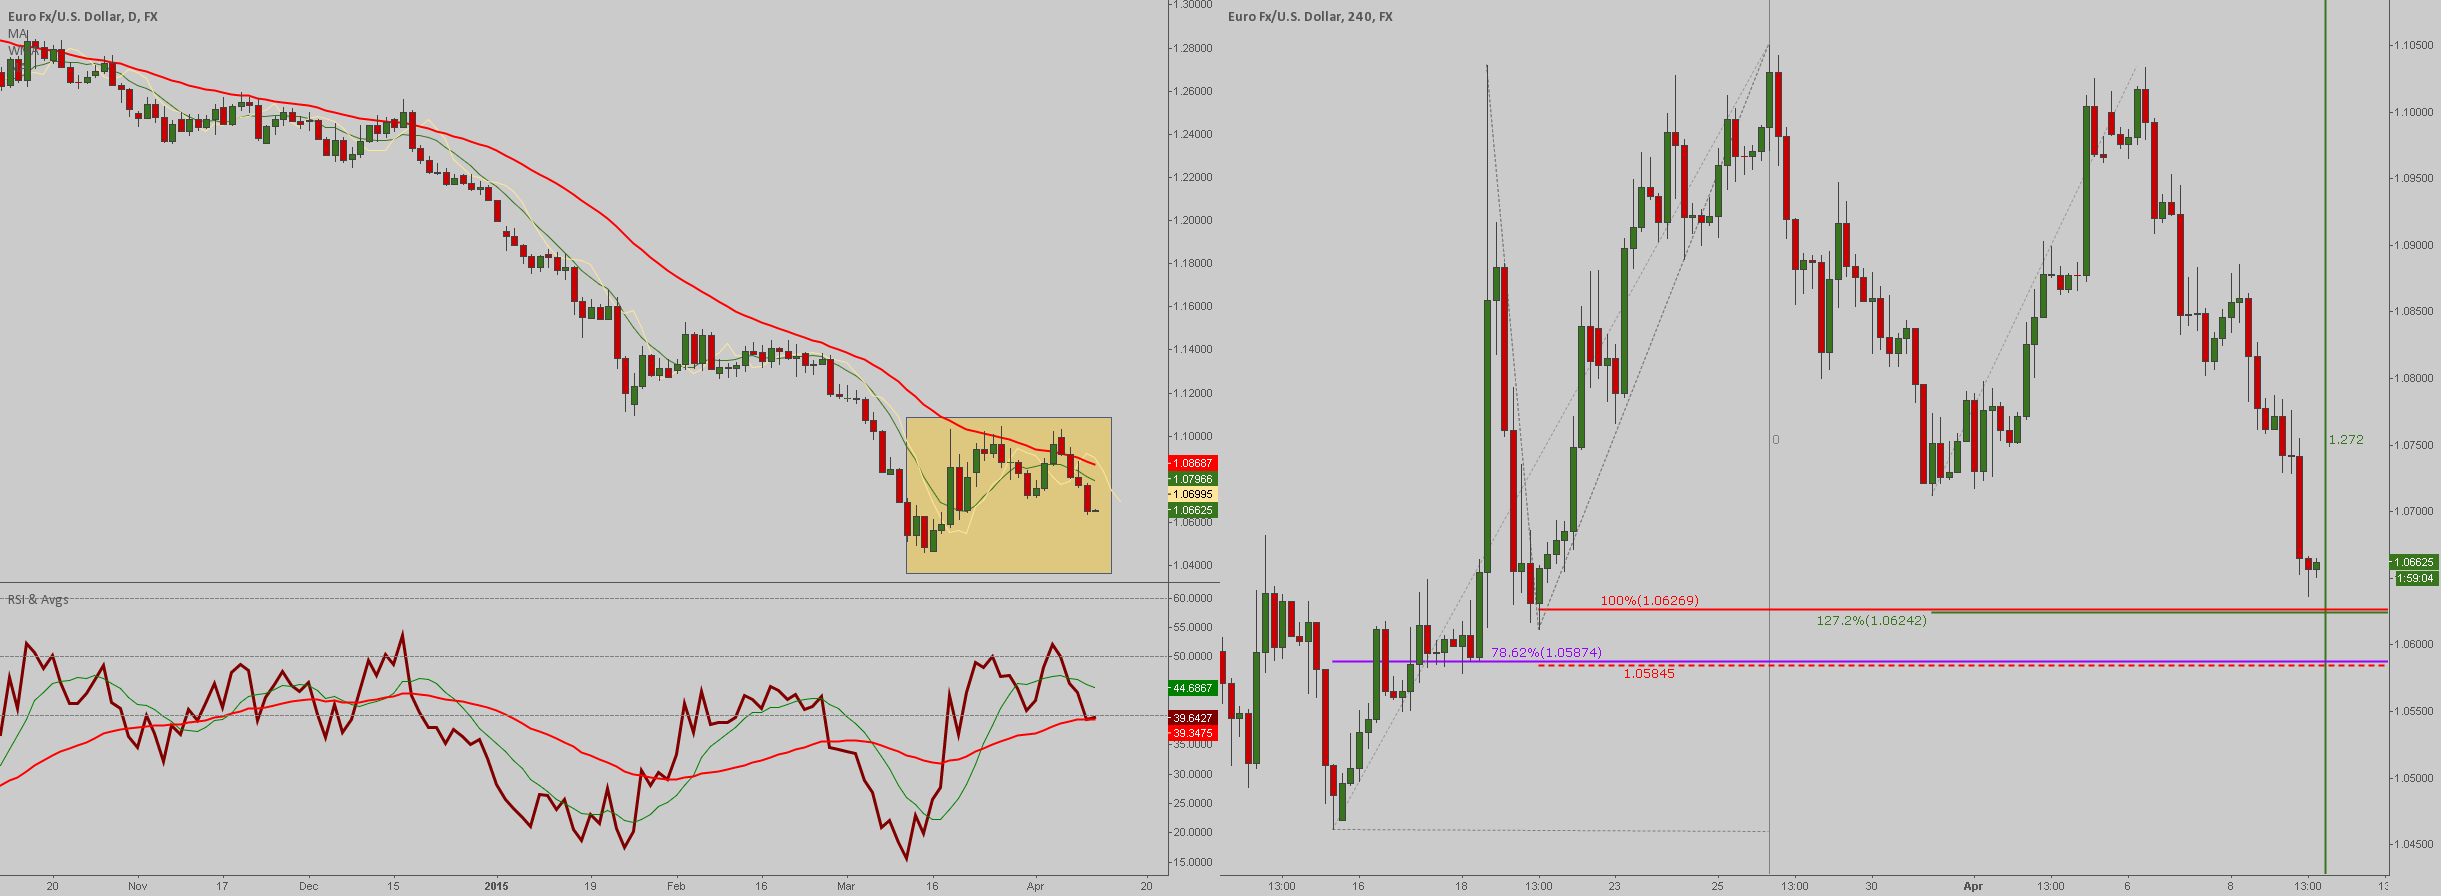 EUR/USD: time & price signalling imminent reversal